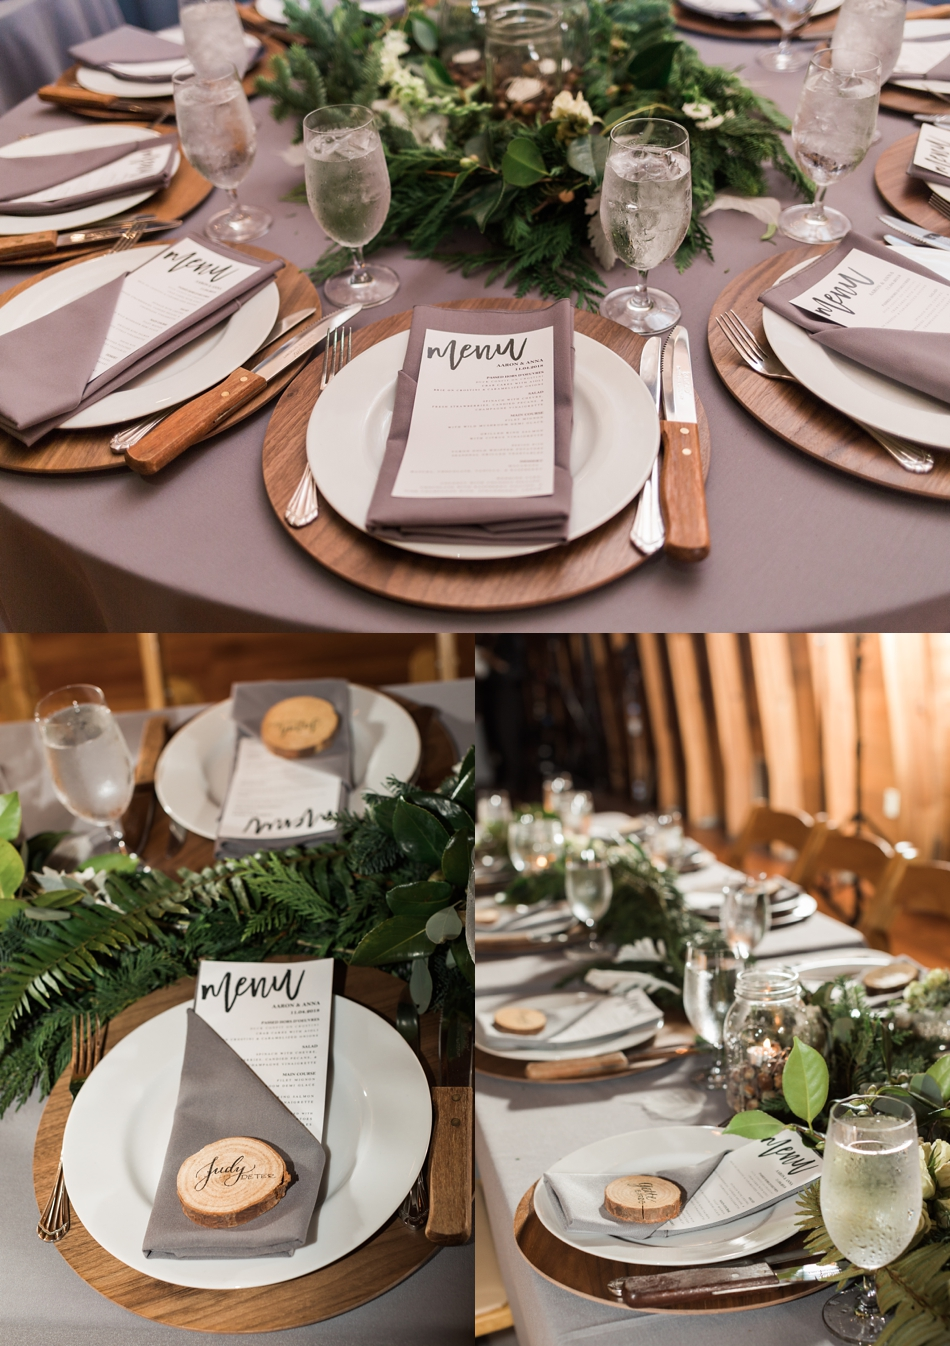 A photo of tableware, stemware, and a floral centerpiece during the reception of a fall wedding at the Loft at Russell's in Bothell, a wedding venue near Seattle. | Joanna Monger Photography | Snohomish & Seattle Wedding Photographer